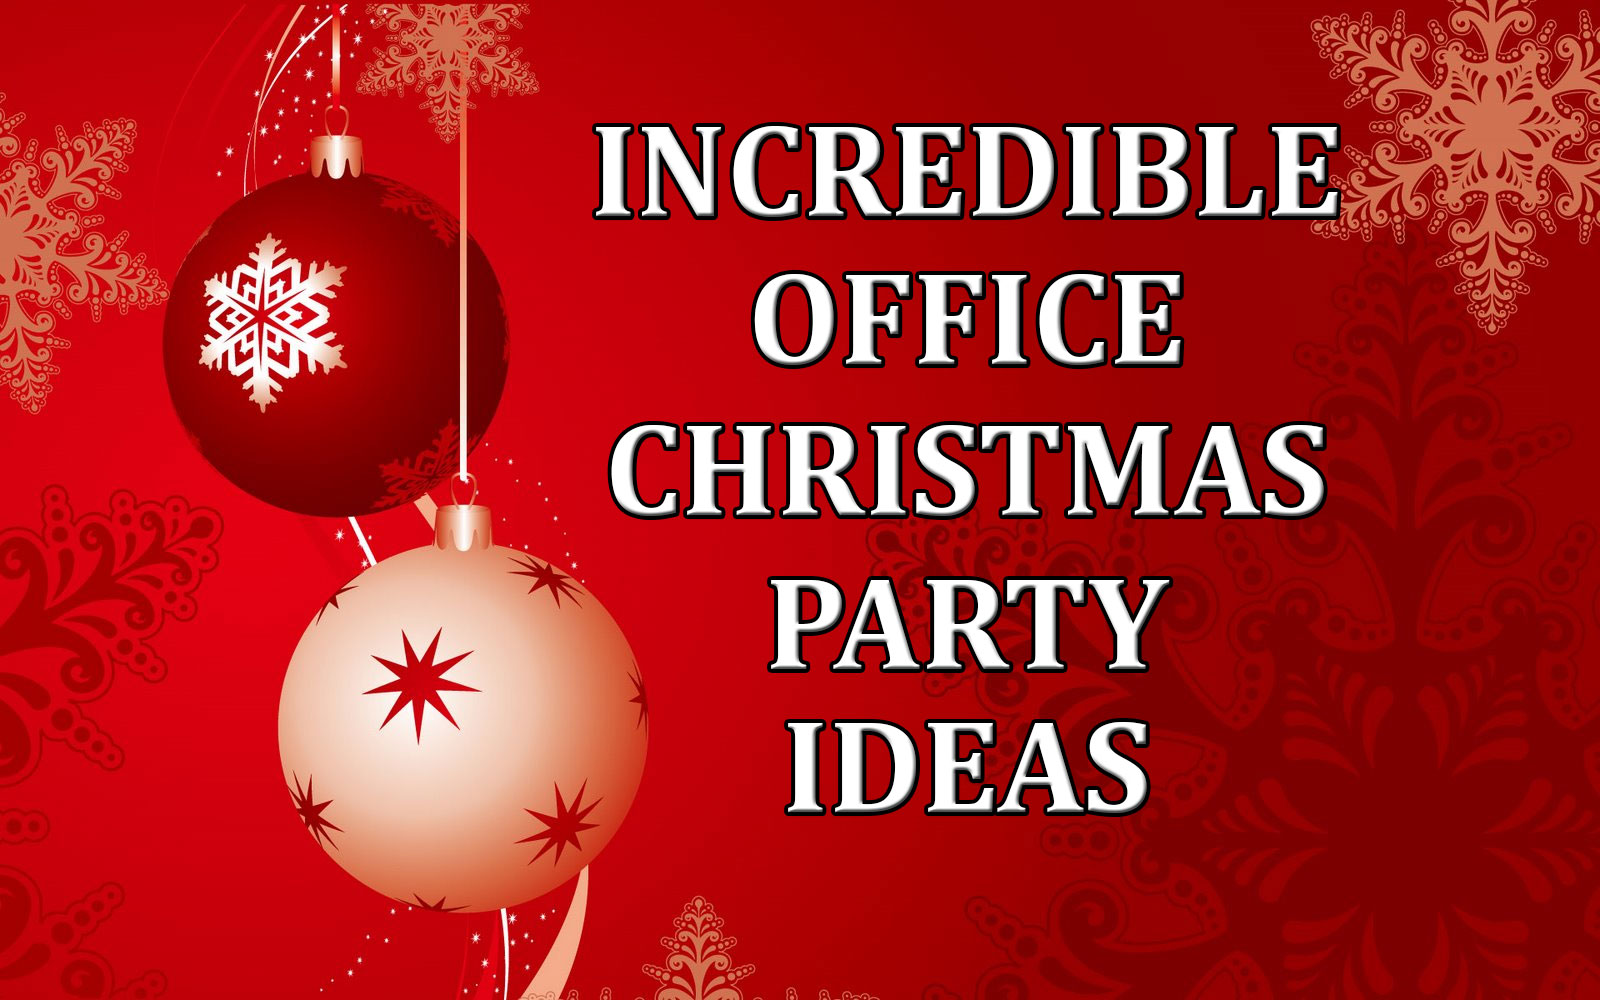 Christmas Party Planning.Christmas Party Shuttle Services News Altimate Club Wine Tours